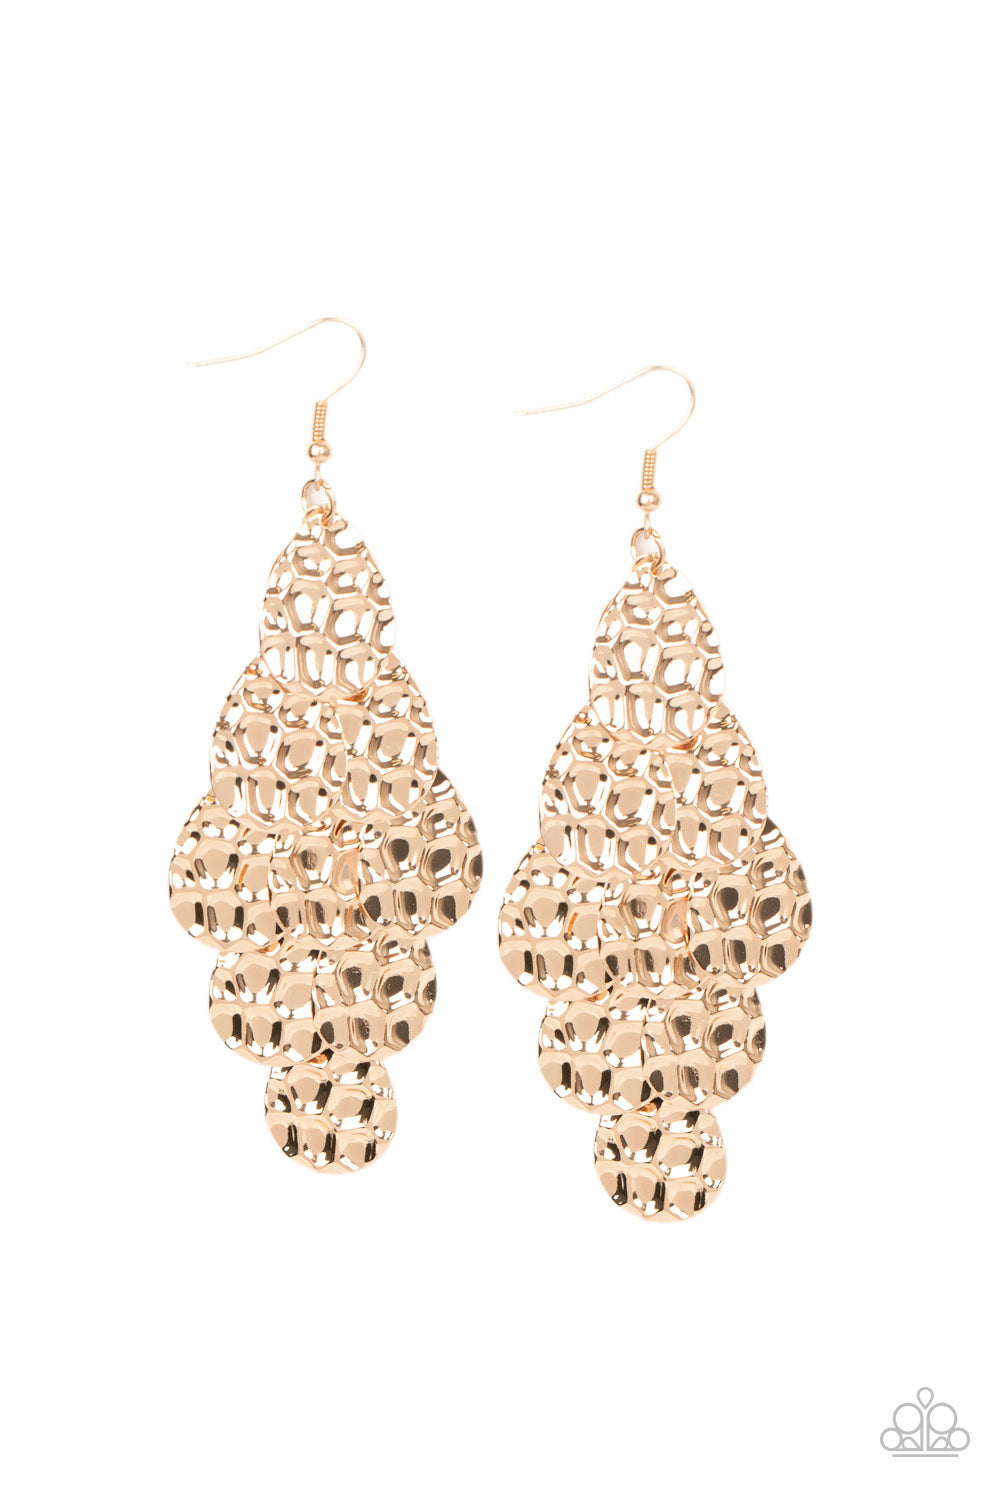 five-dollar-jewelry-instant-incandescence-gold-earrings-paparazzi-accessories